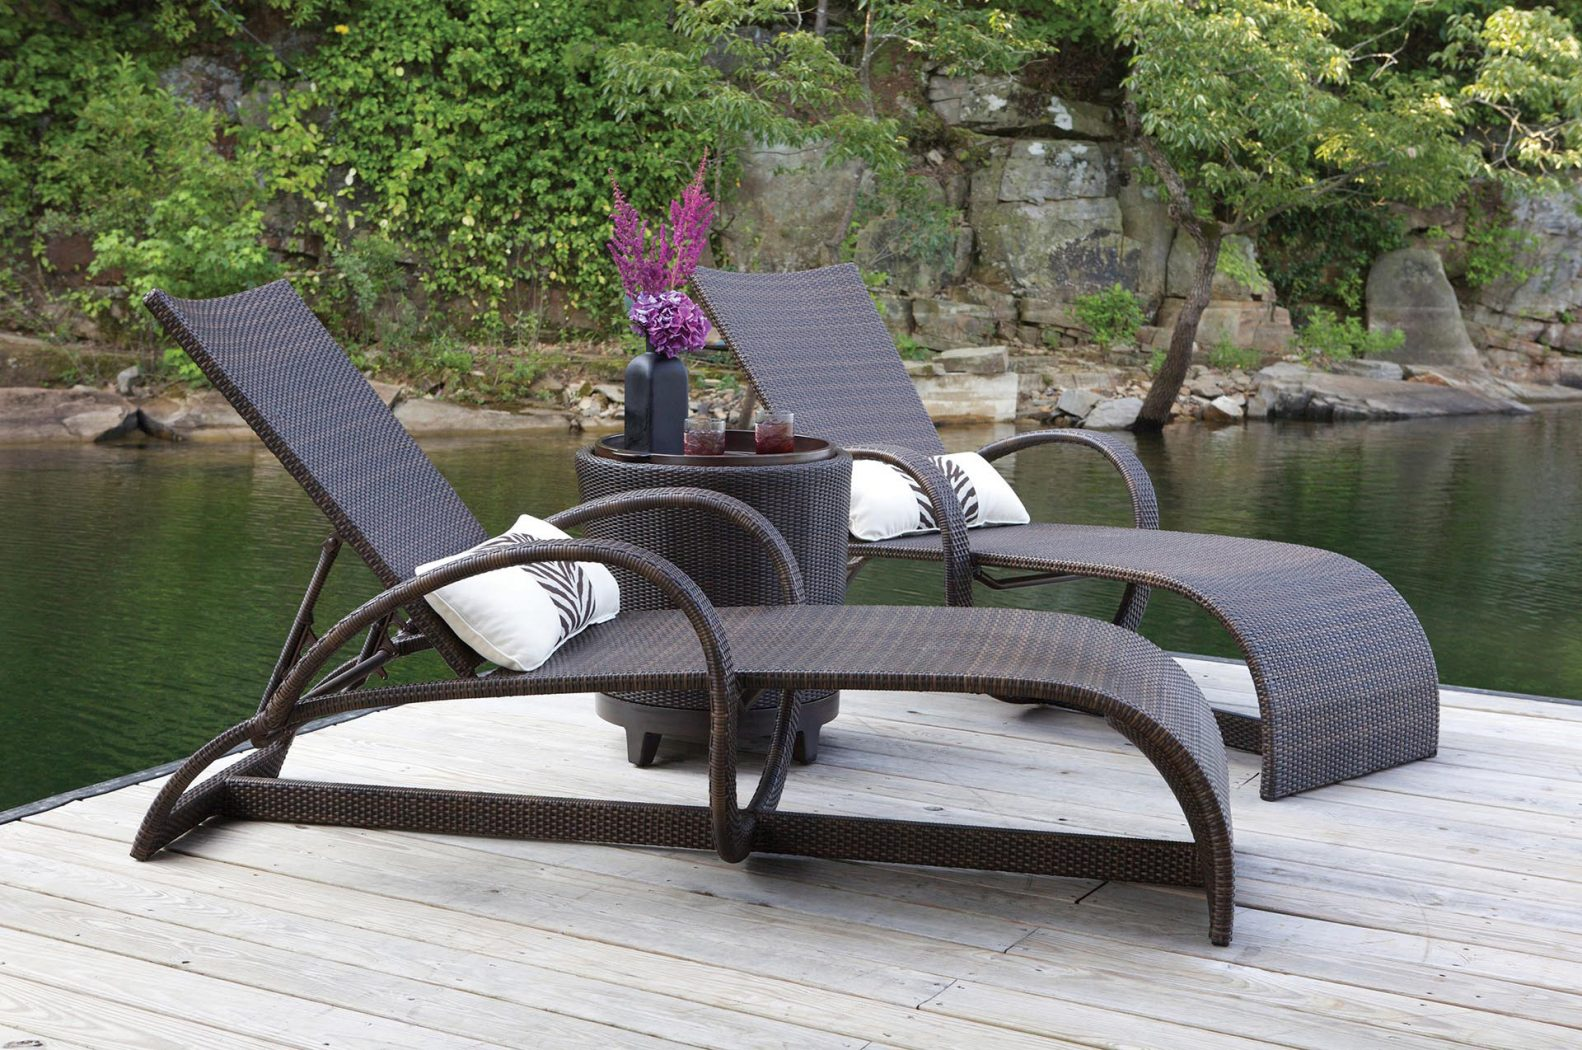 Halo chaise lounges